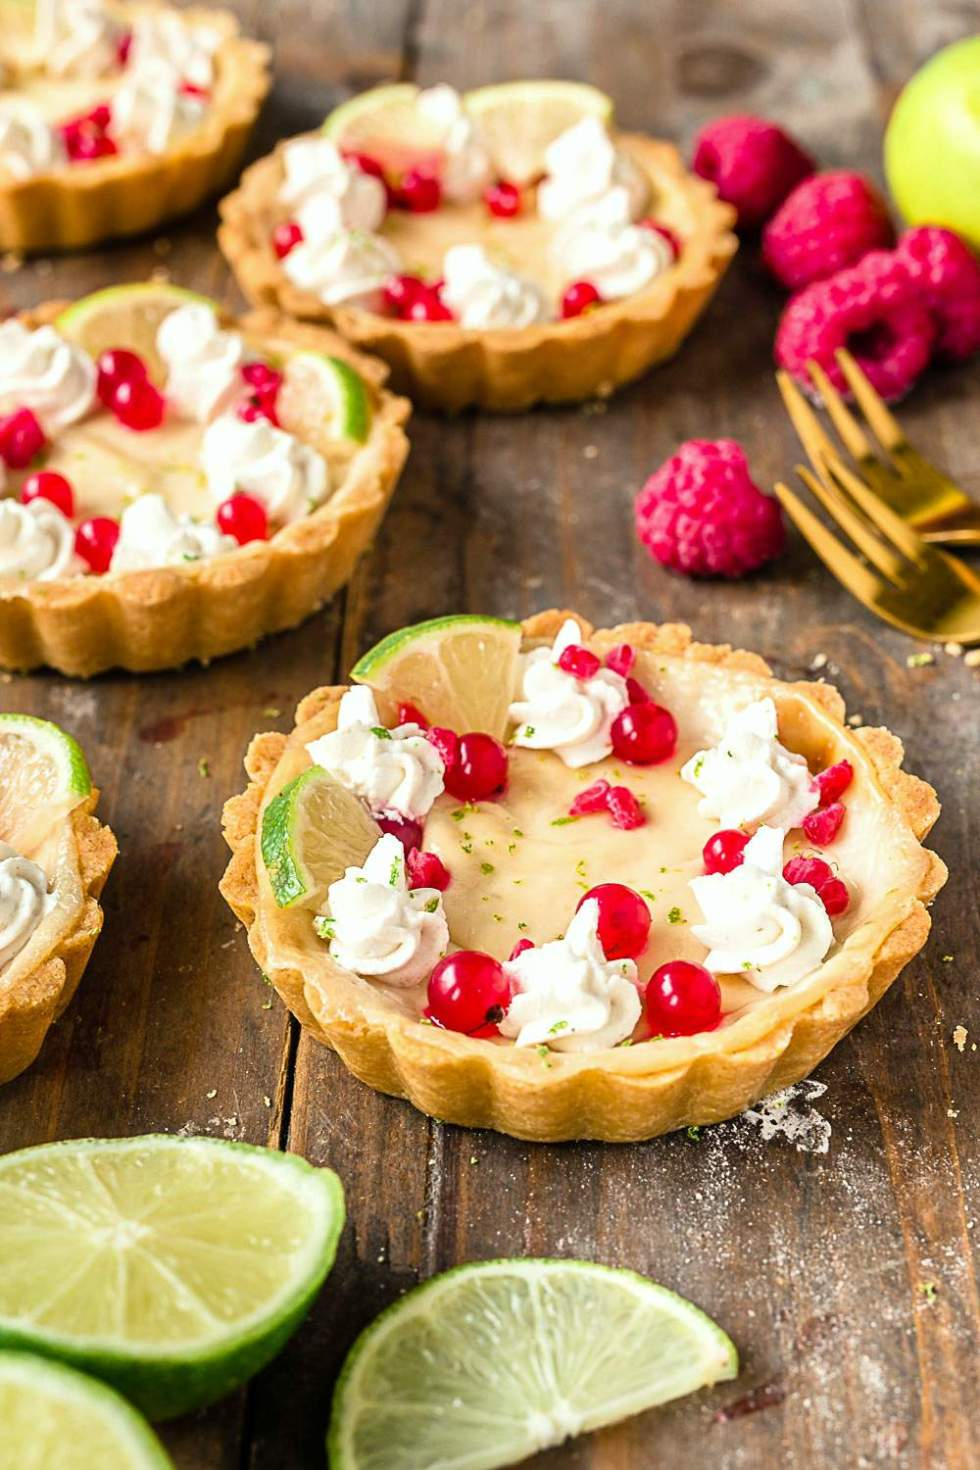 Gluten-free vegan cheesecake tart with white chocolate cream